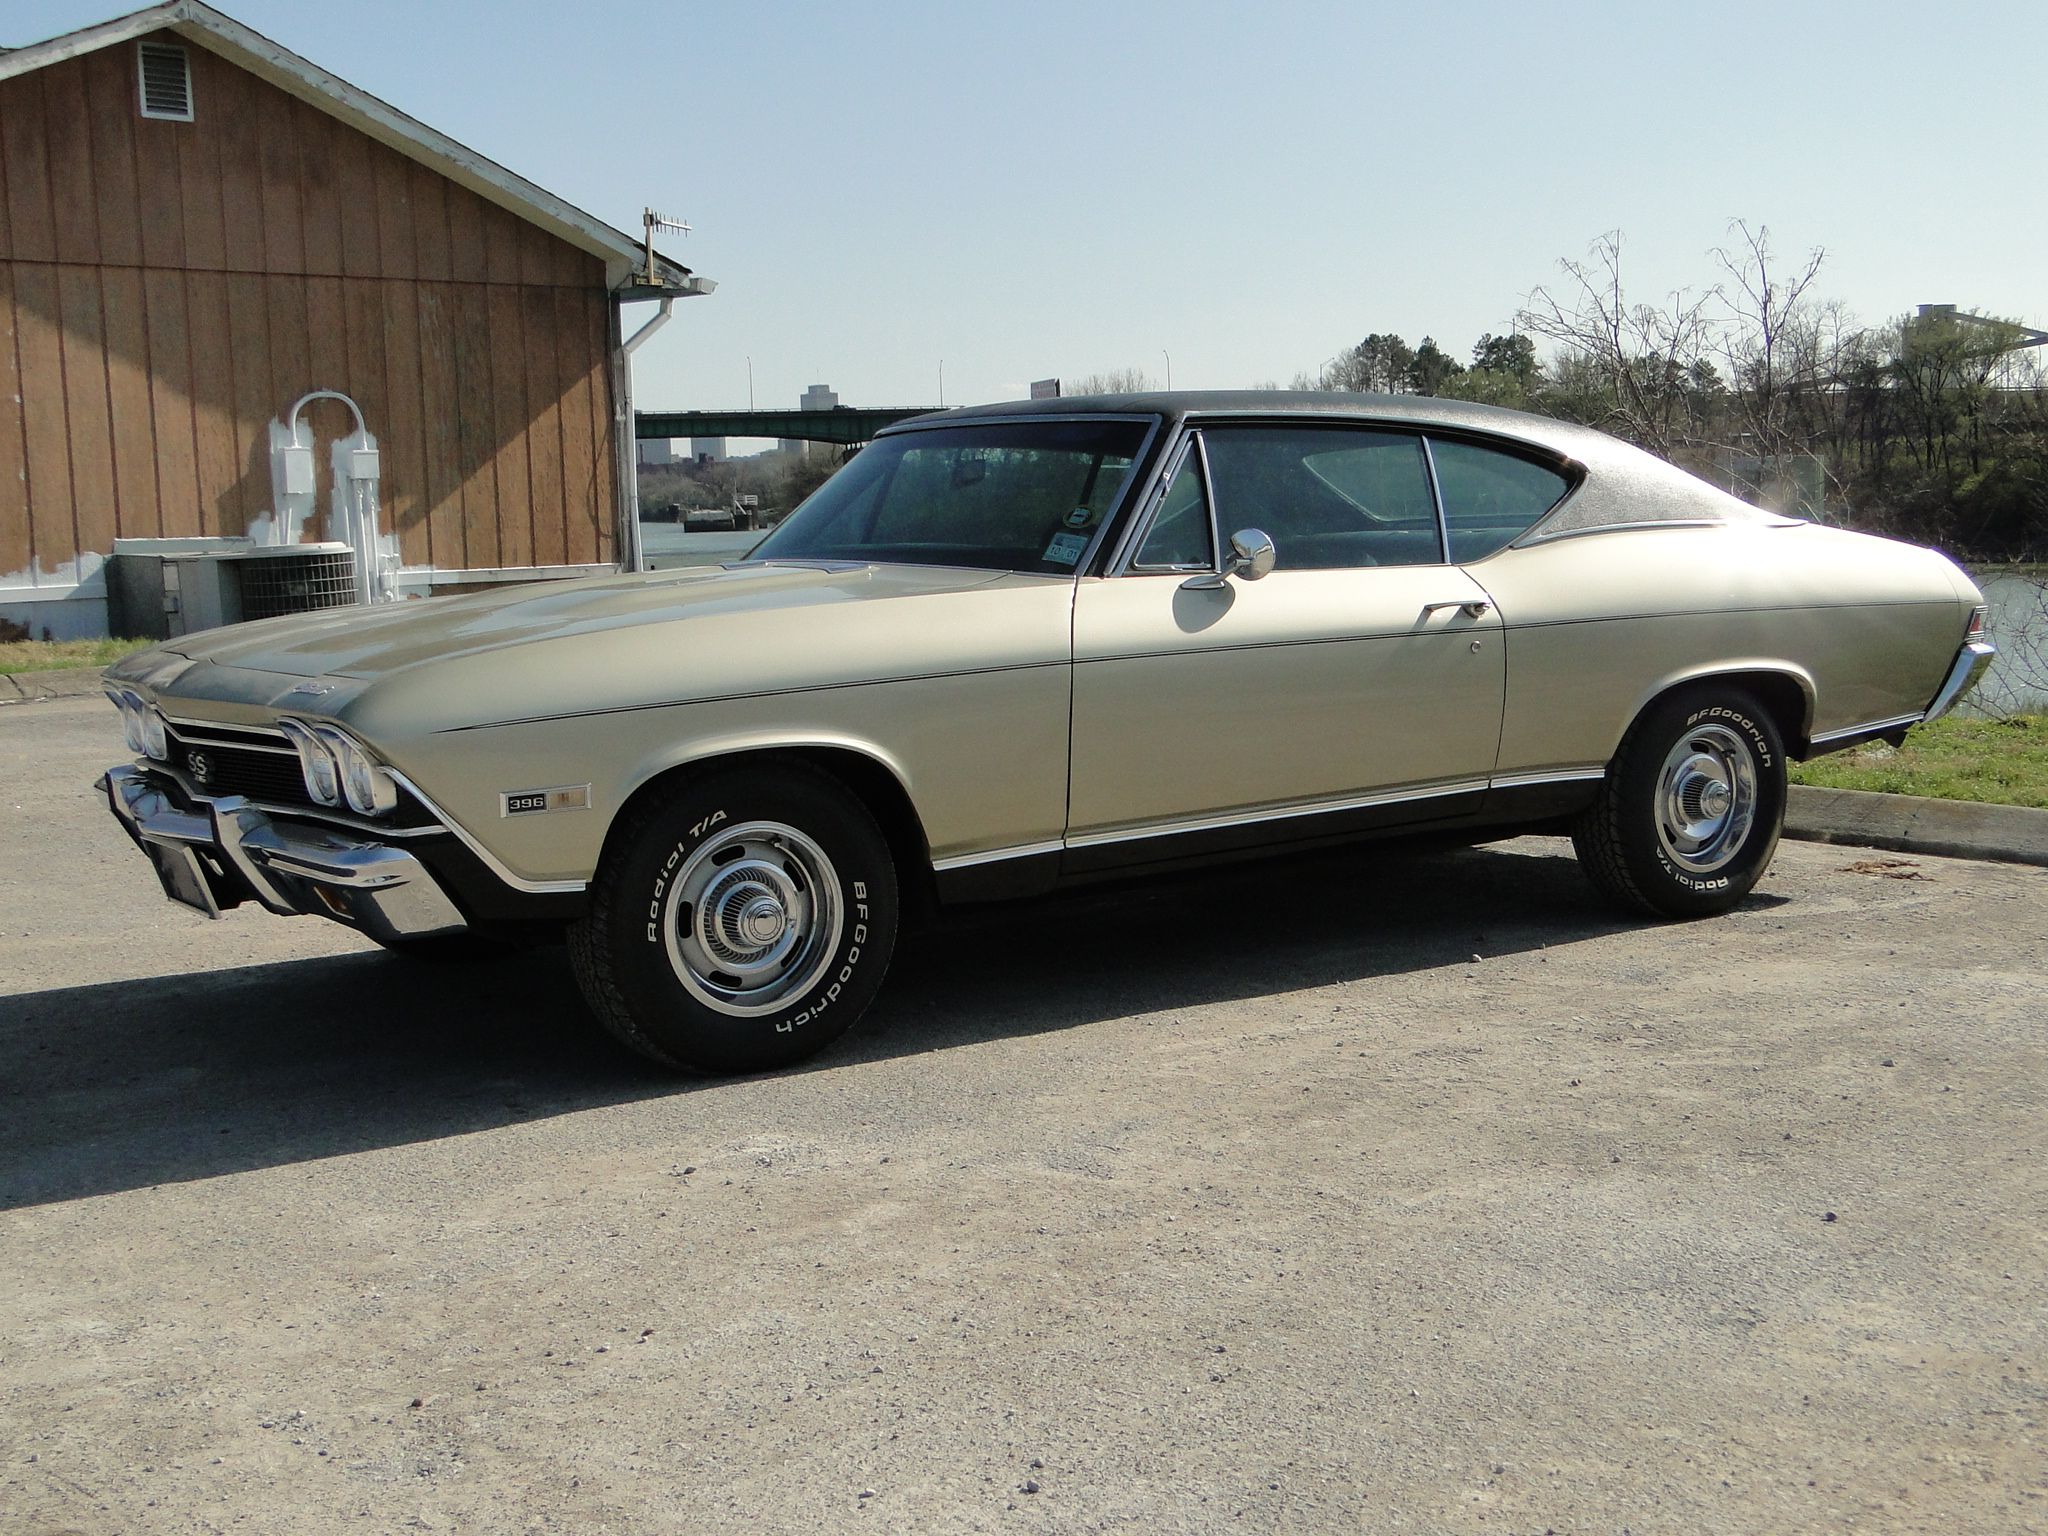 0_1968_CHEVY_CHEVELLE_PICTURE.JPG 2,048×1,536 pixels | 1968 Chevelle ...